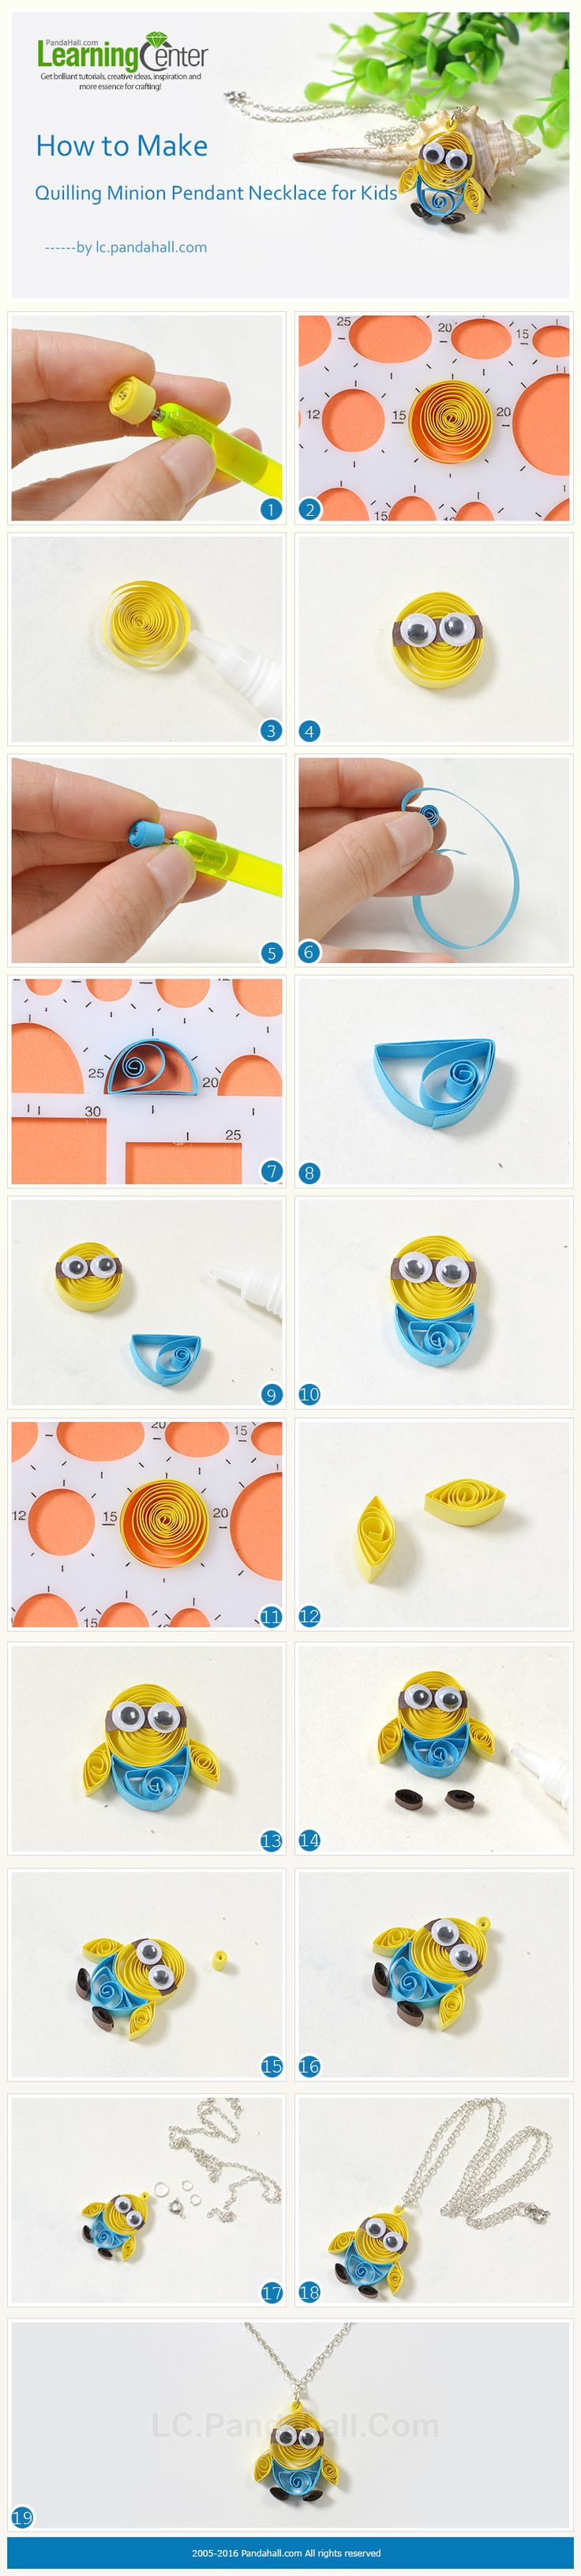 Tutorial for Quilling Minion Pendant Necklace for Kids from LC.Pandahall.com